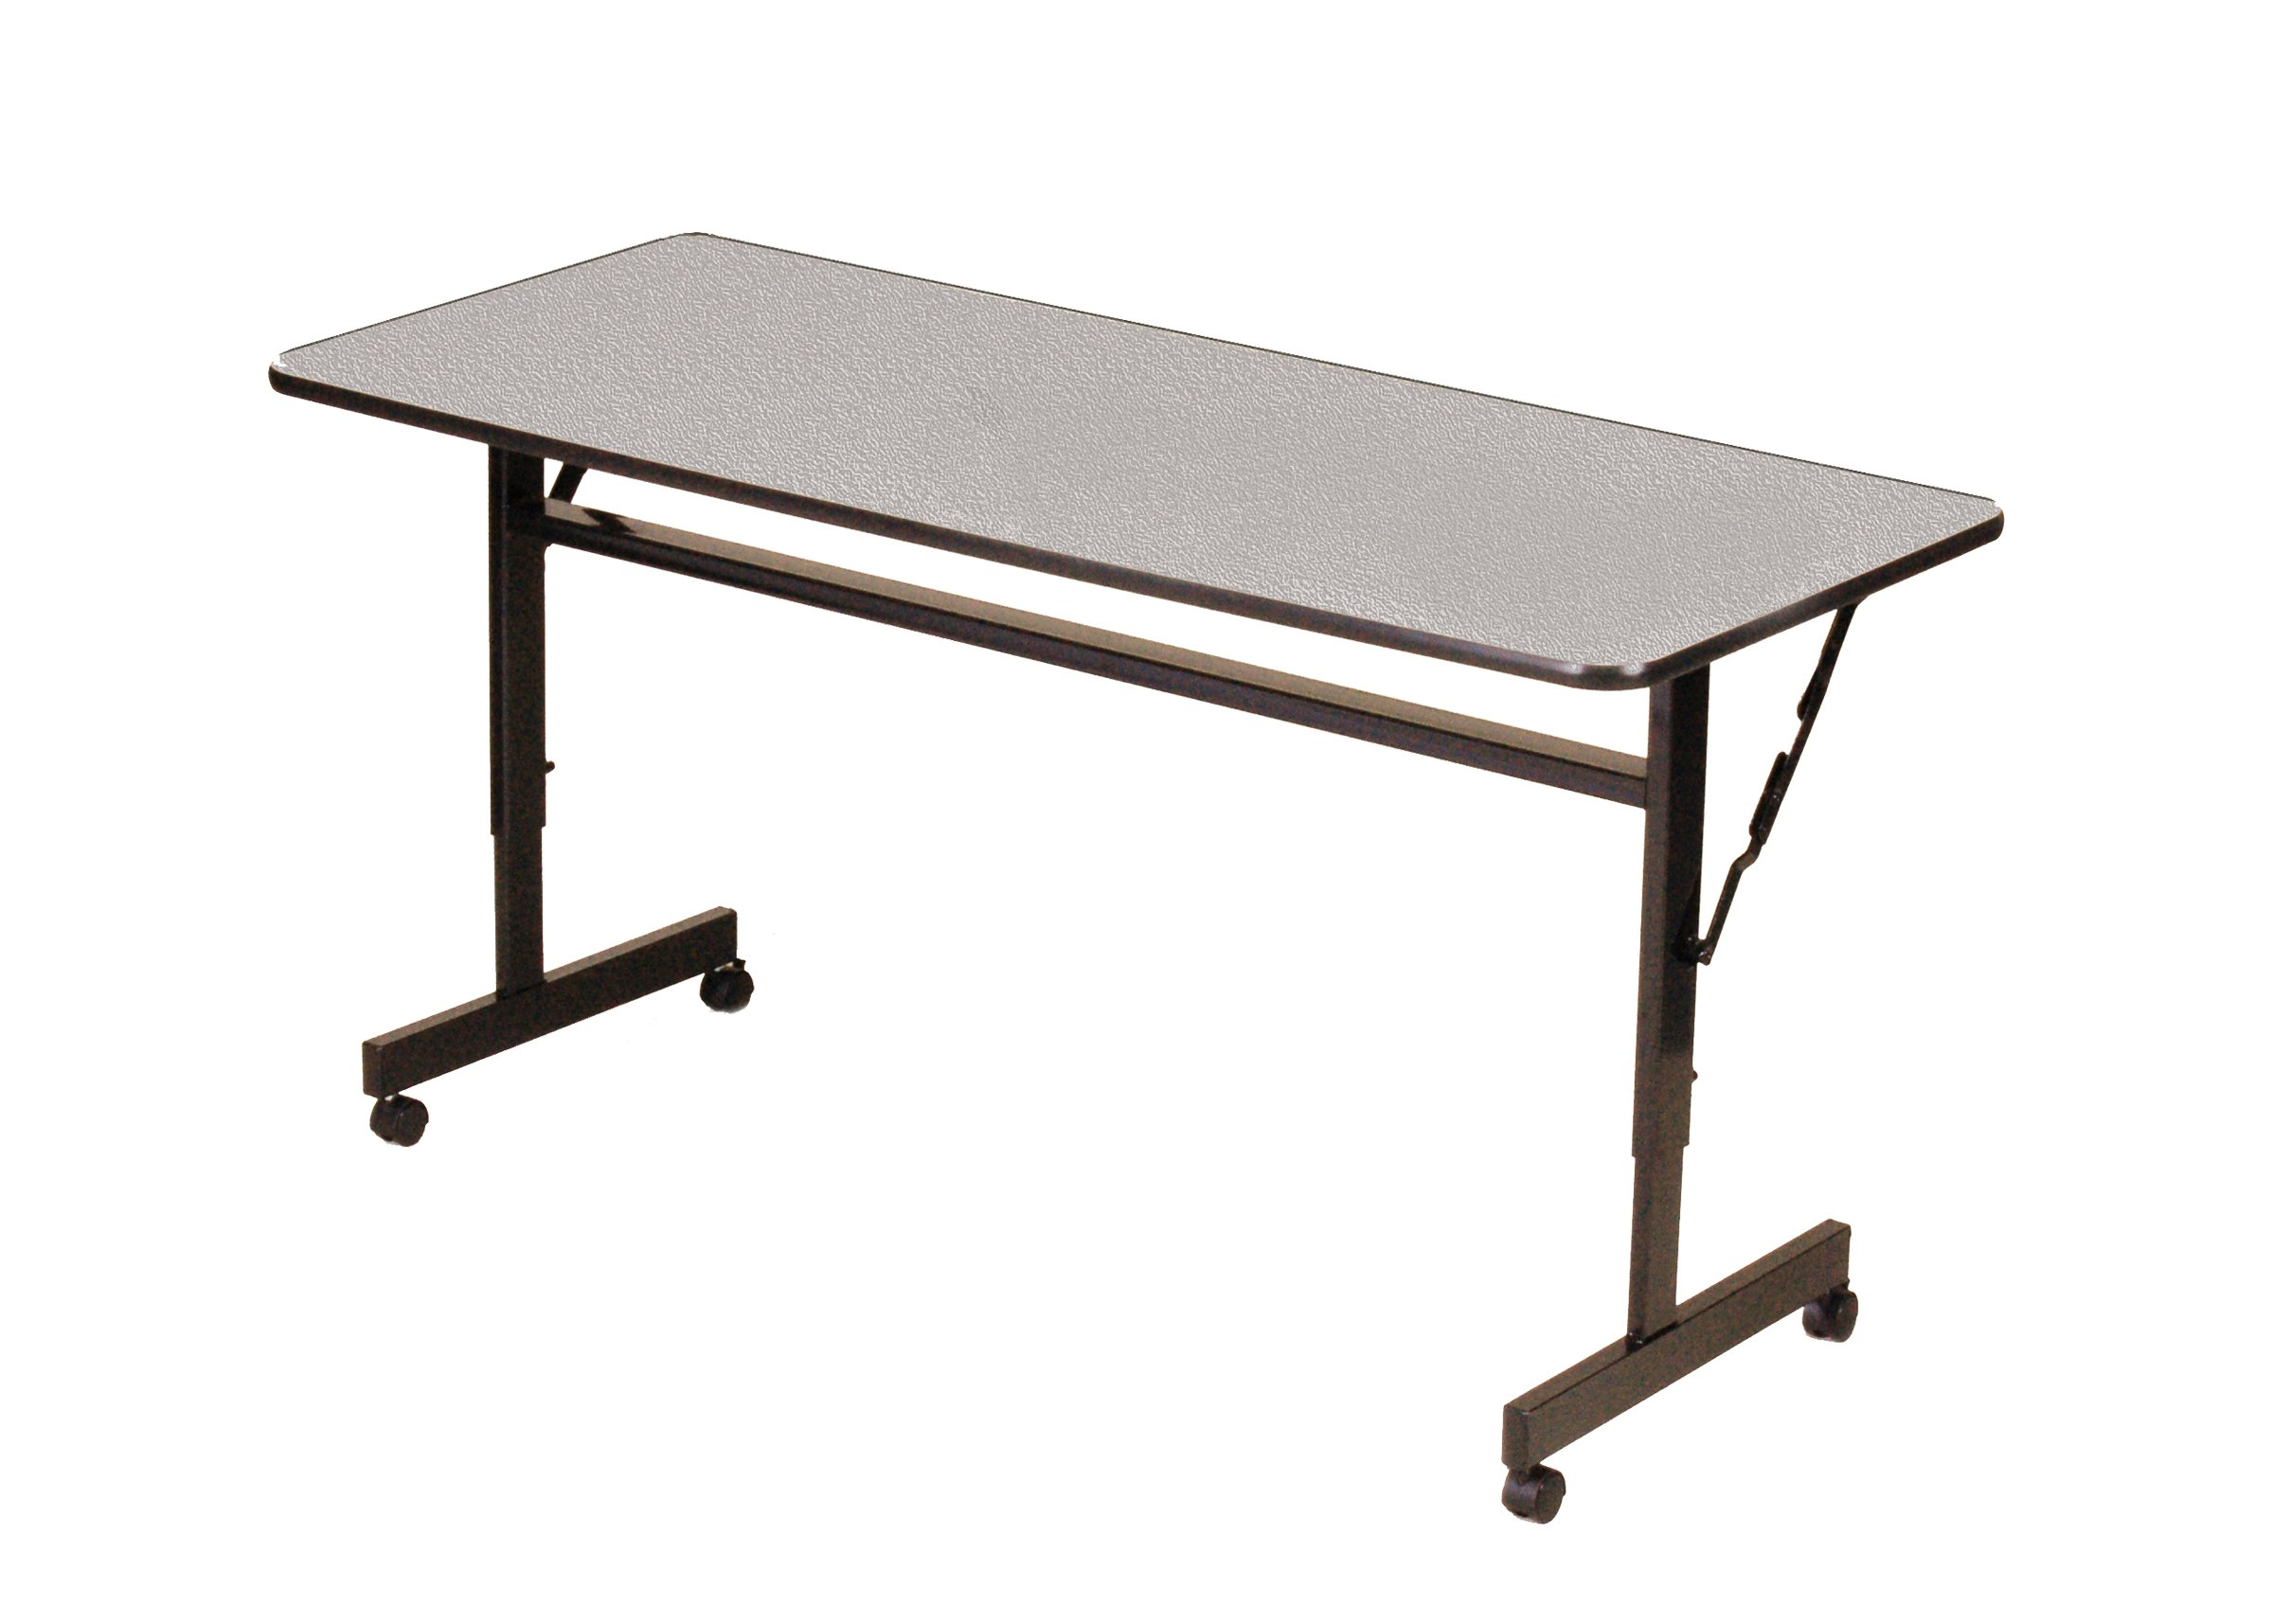 Correll FT2448M-15 EconoLine Flip Top Table, 24'' x 48'', Adjustable Height, Gray Granite Melamine Top, Rectangle, Seats 2